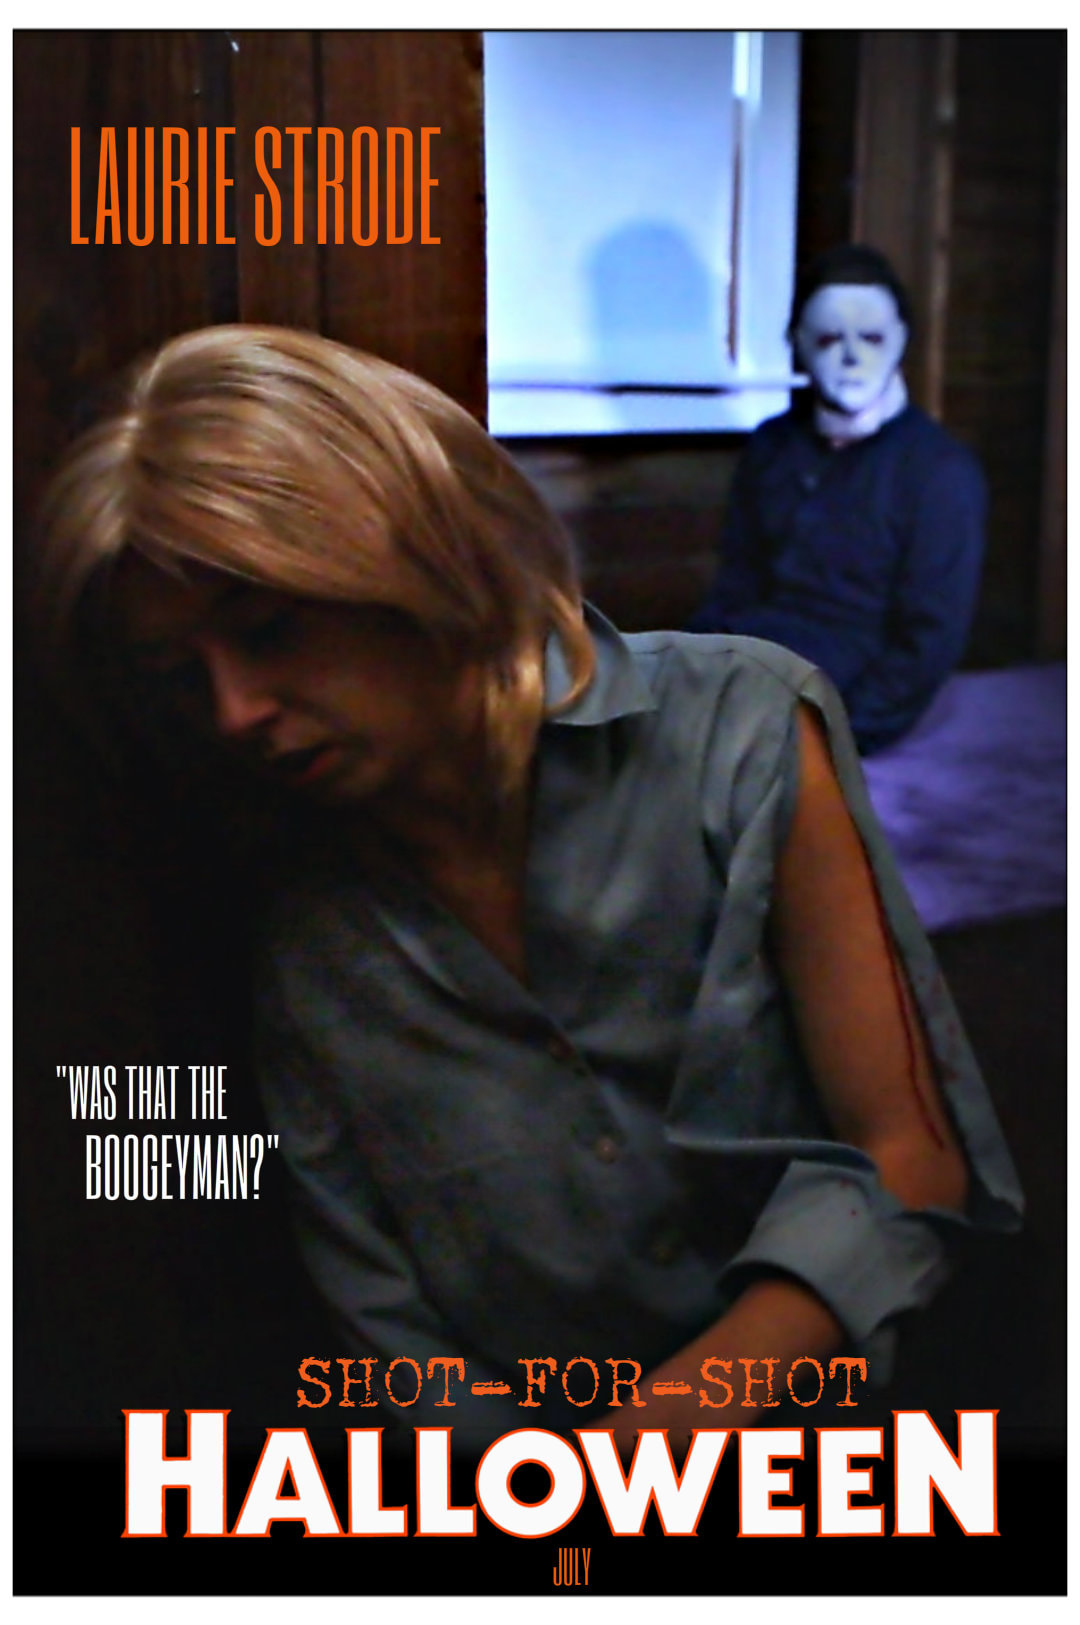 halloween-shot-for-shot-laurie-poster